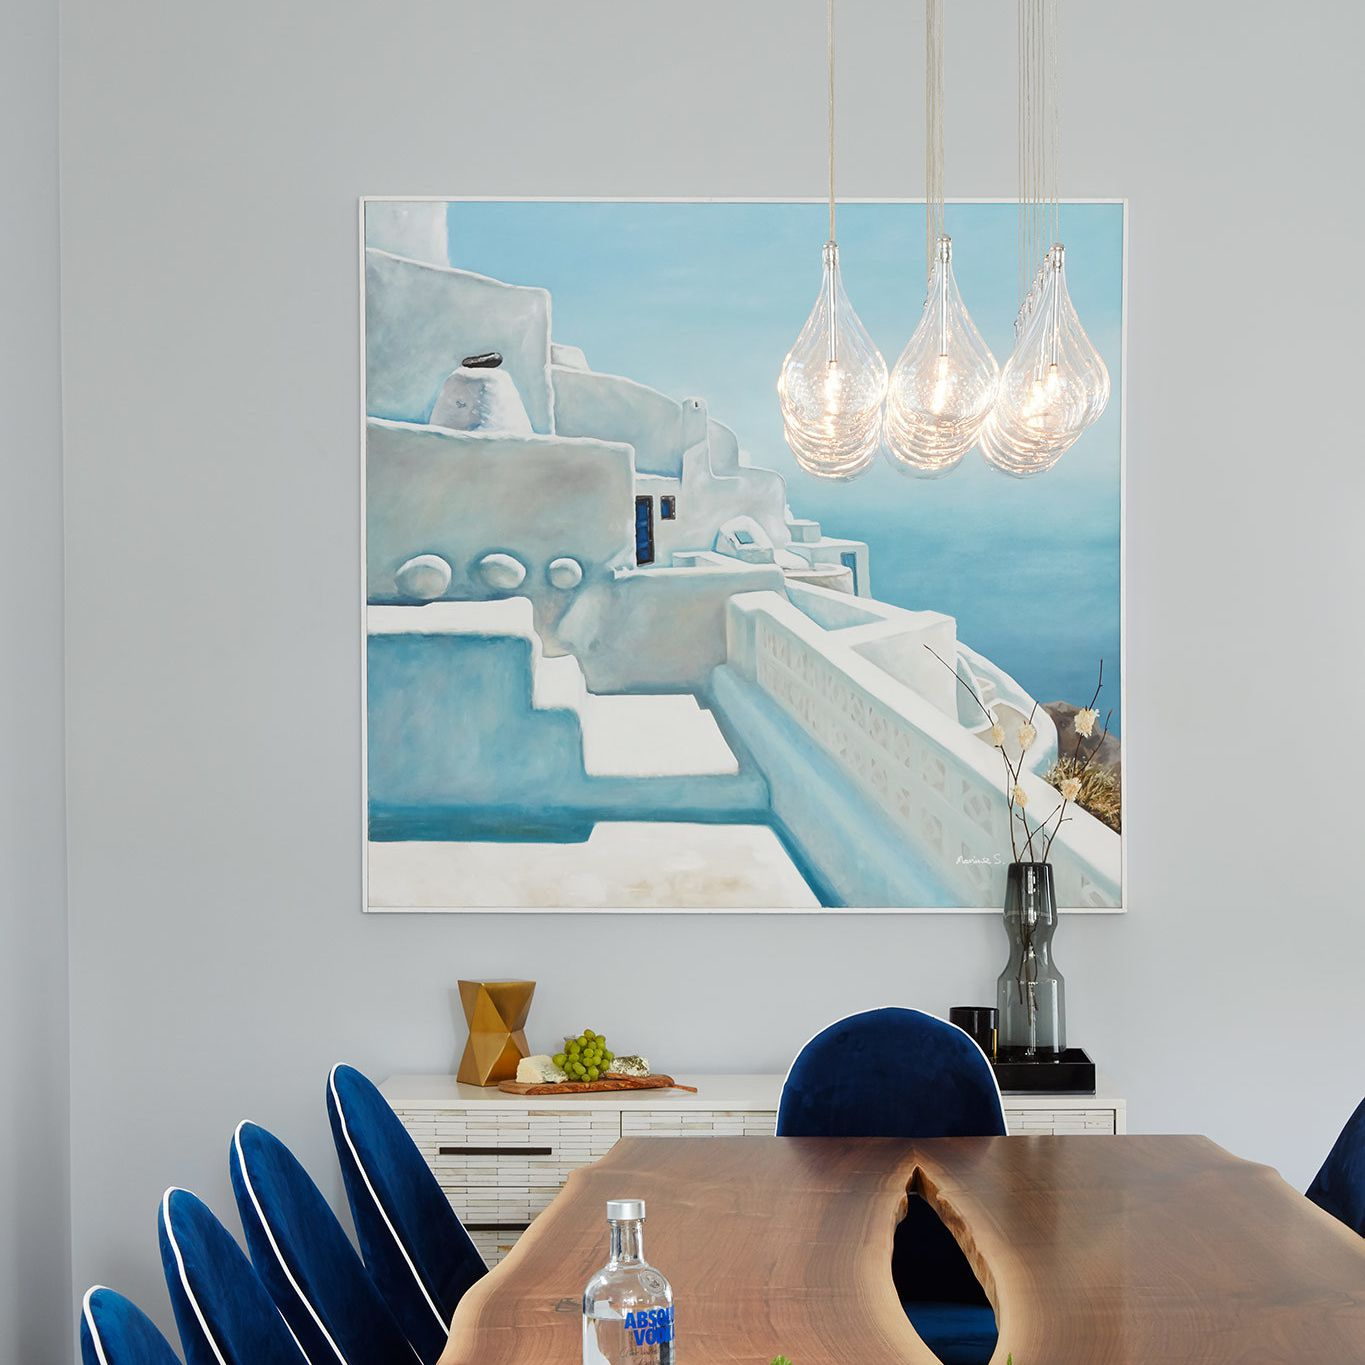 A dining room decorated with navy upholstered chairs and a light blue painting